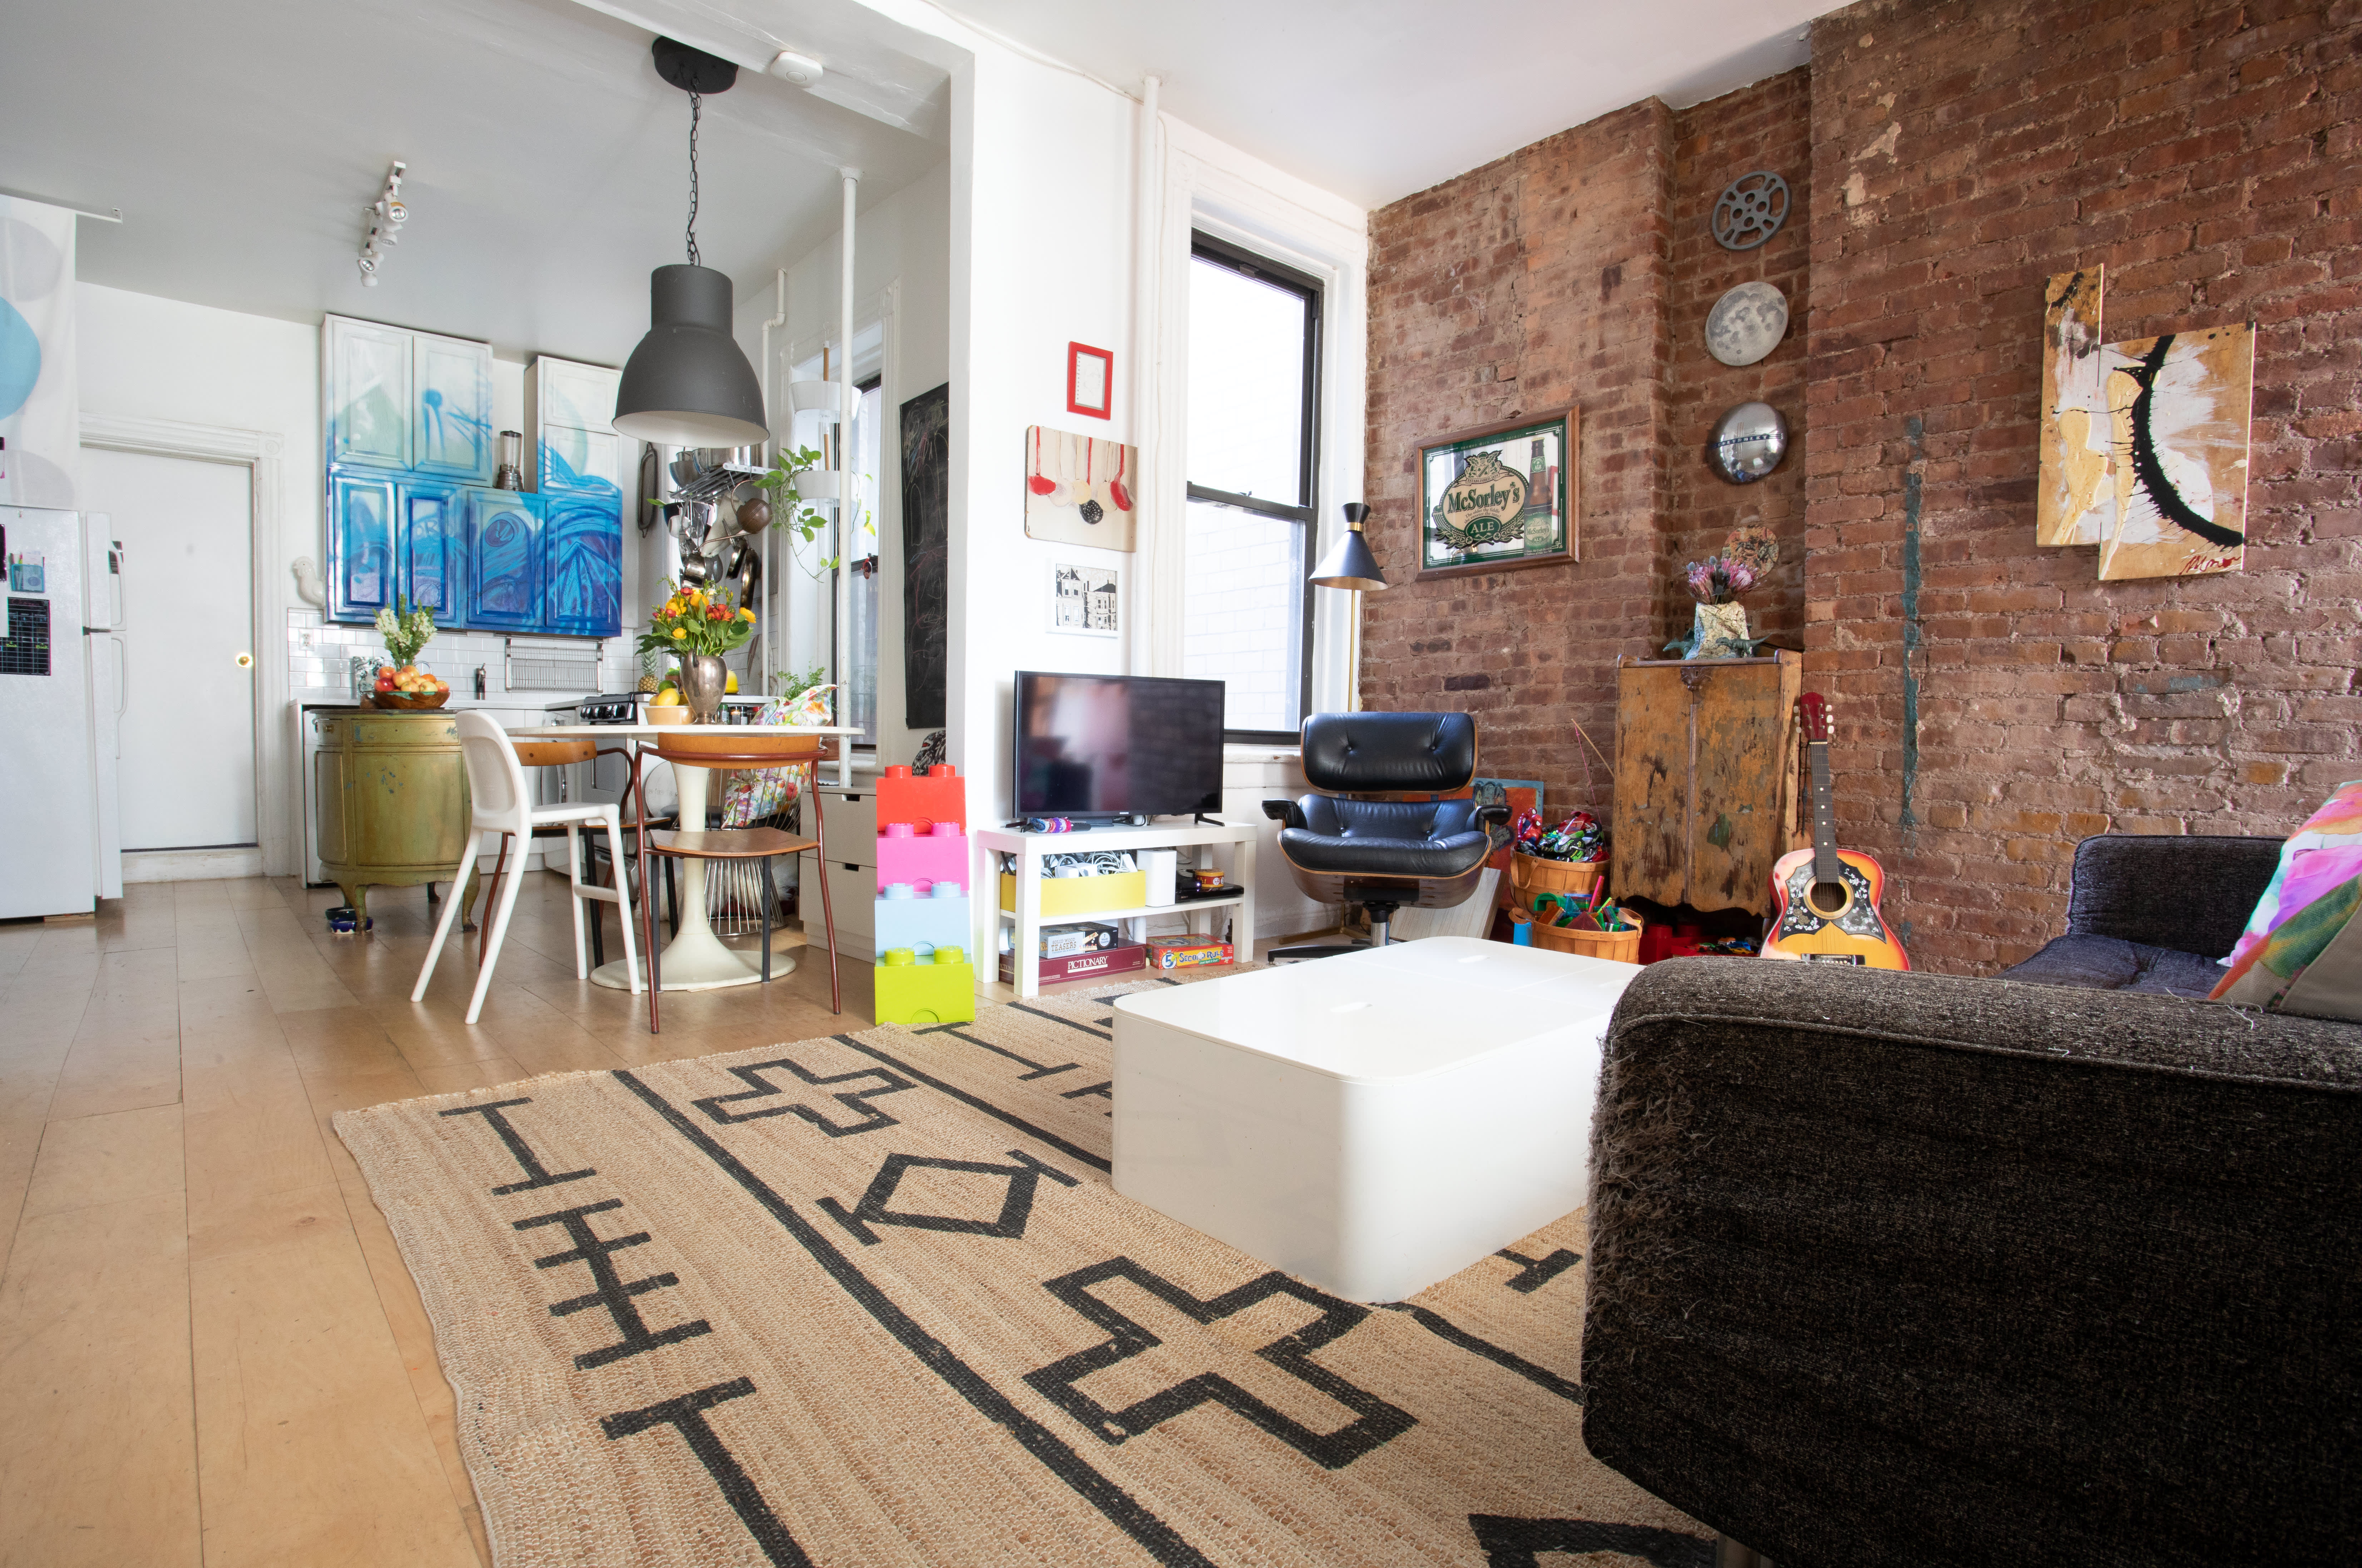 This Family Of Four S 500 Square Foot Apartment Feels Much Larger Apartment Therapy,Teak Wood Main Door Simple Design